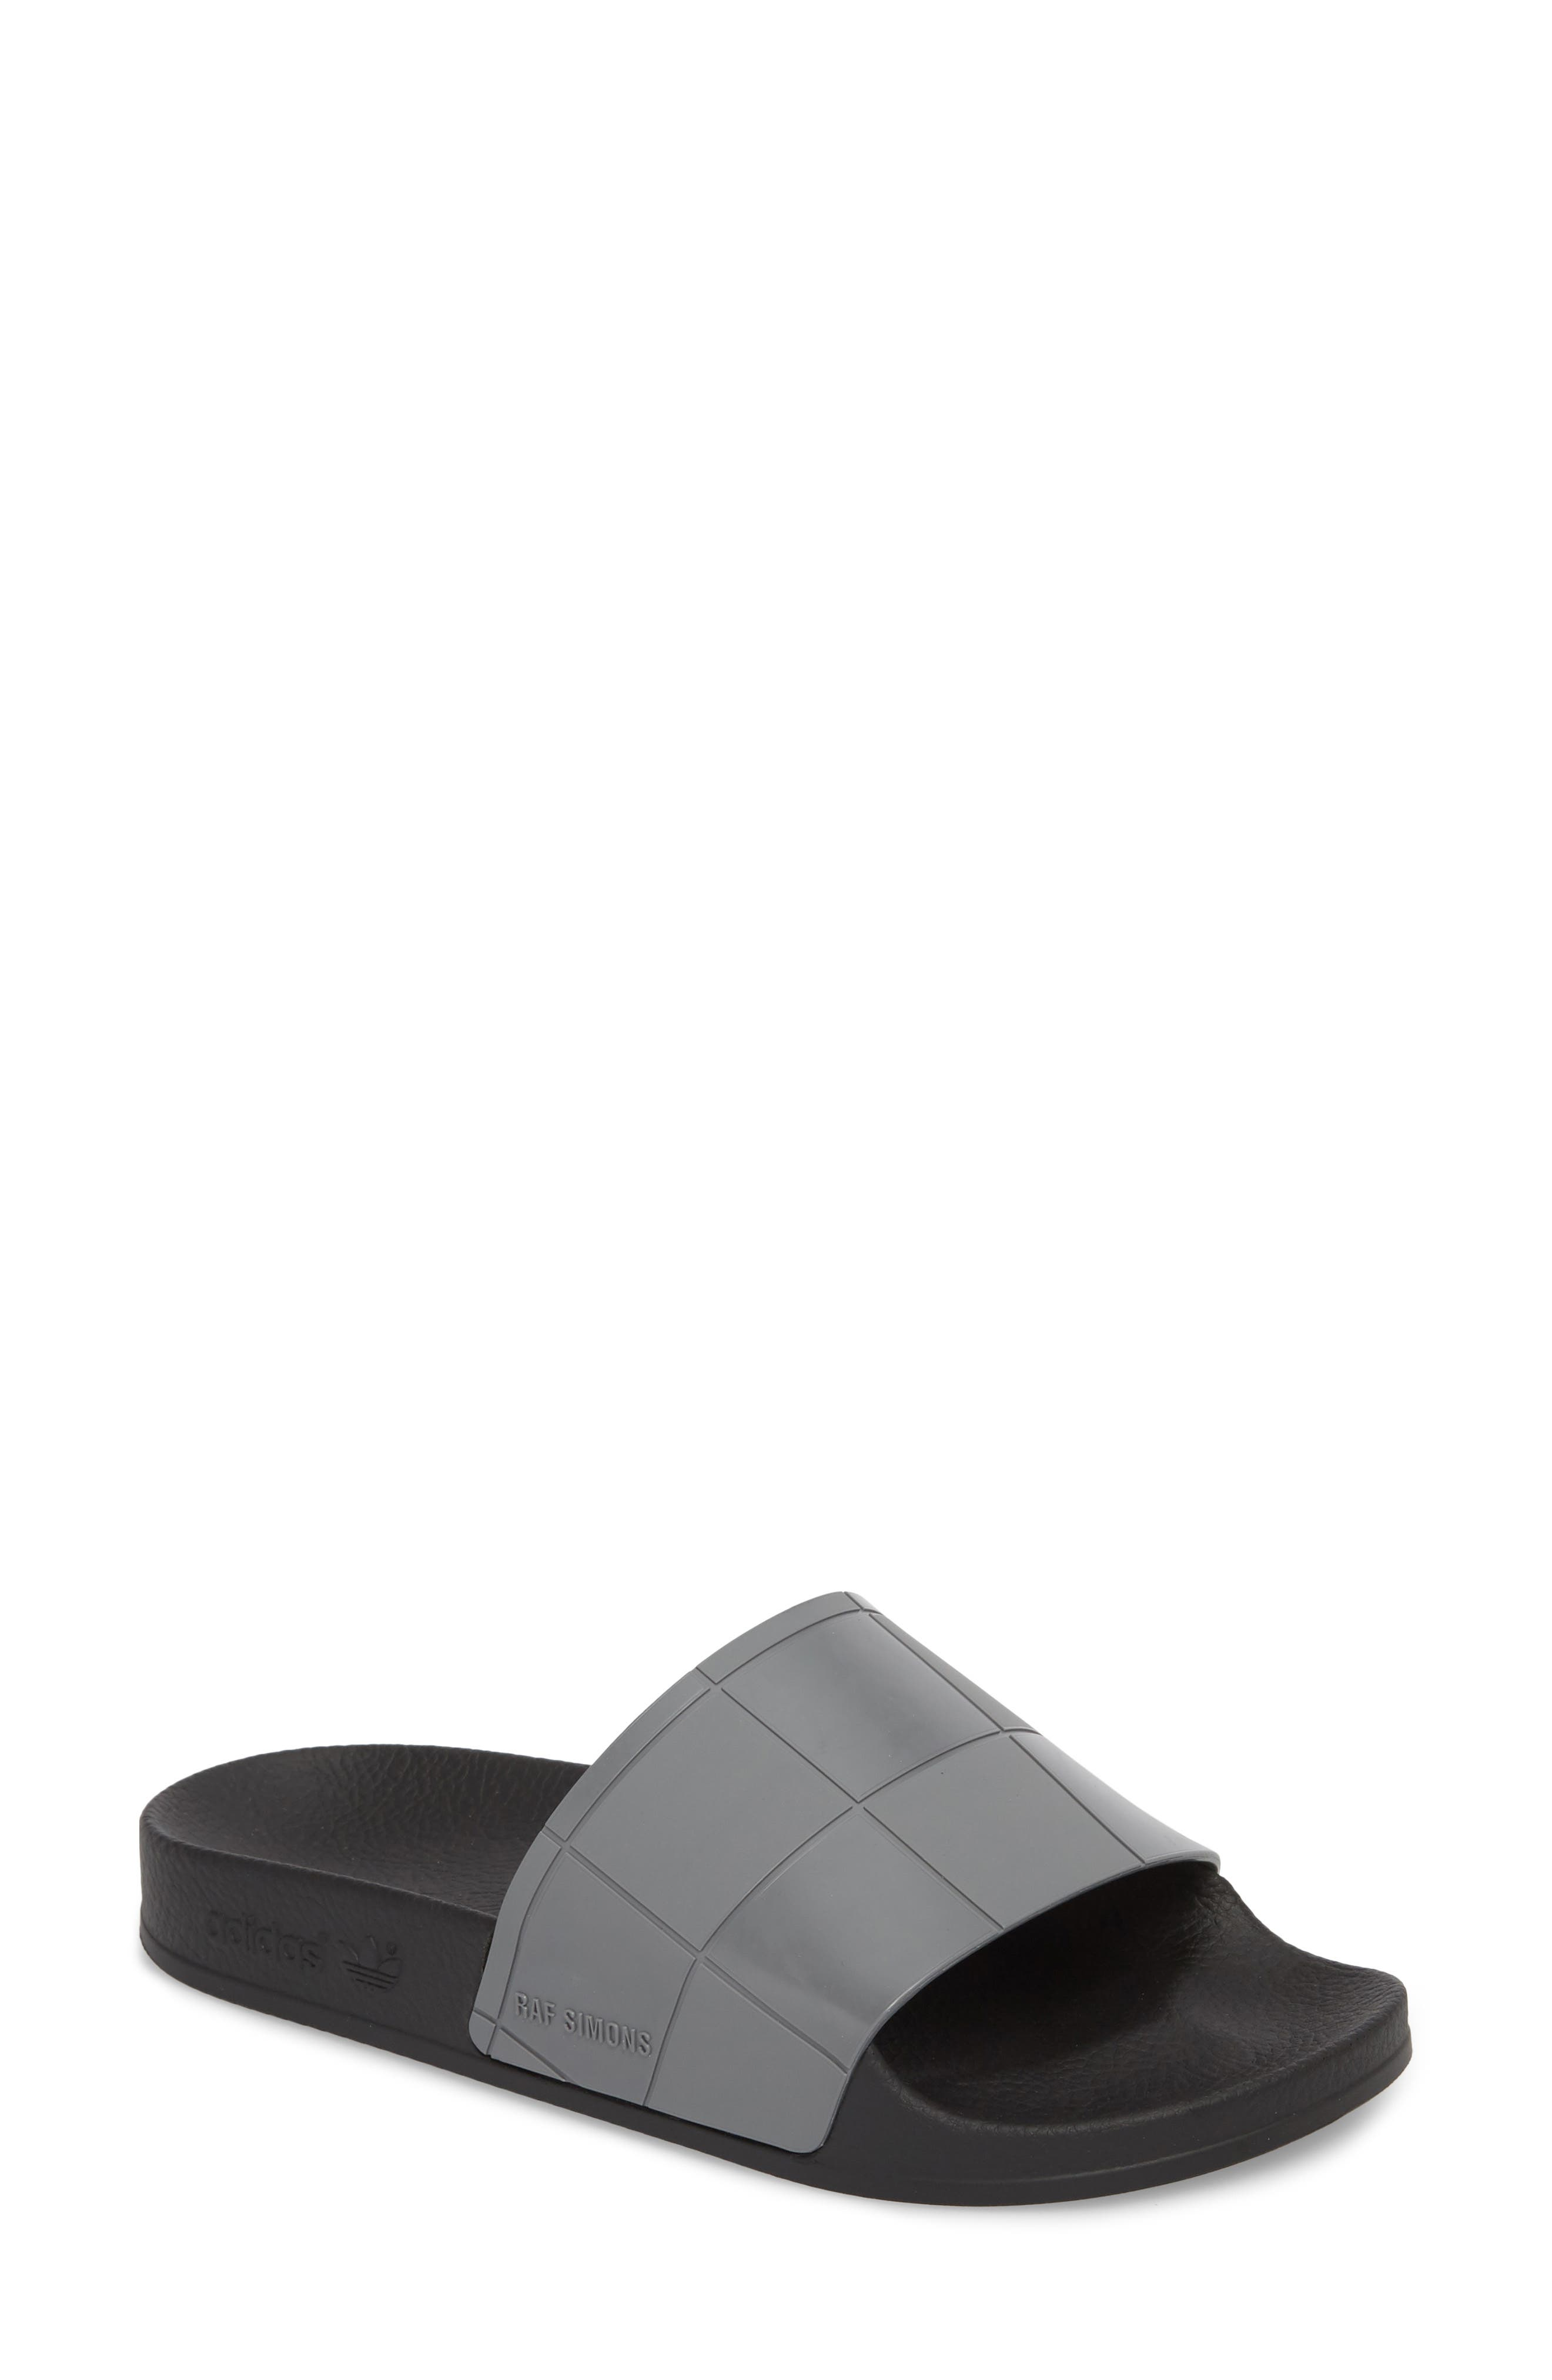 adidas by Raf Simons Adilette Slide Sandal,                             Main thumbnail 1, color,                             001